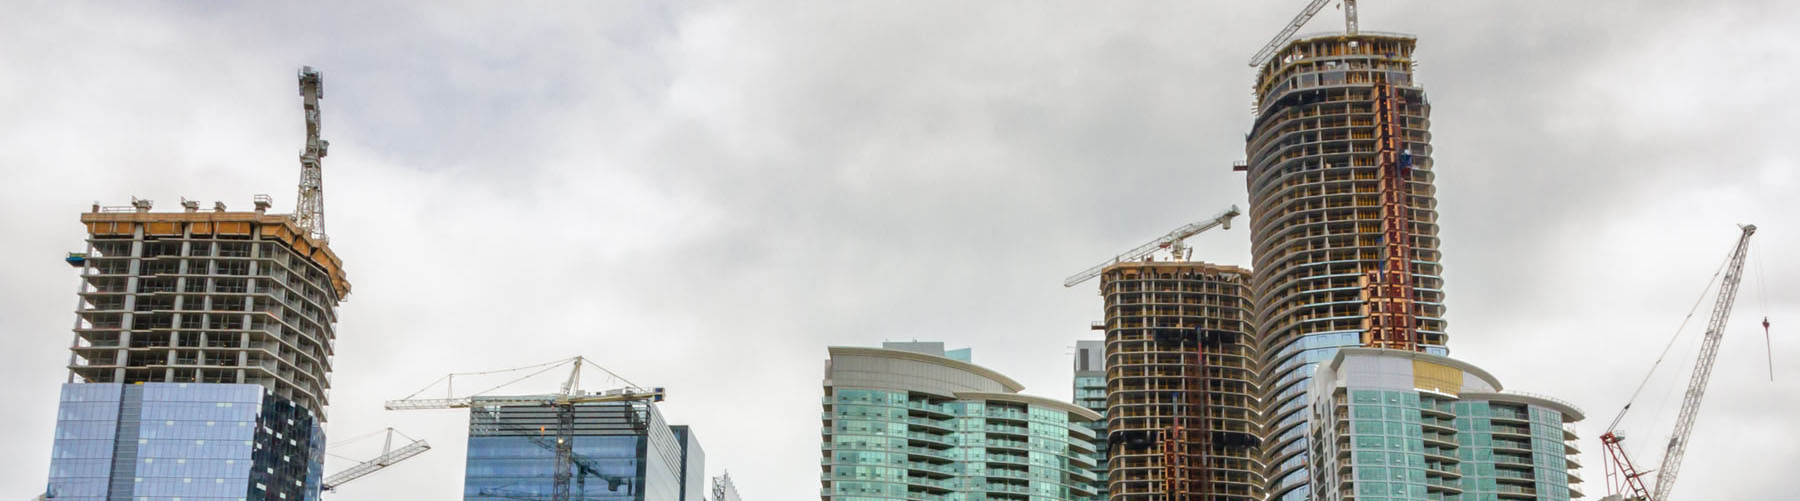 High rise buildings under construction